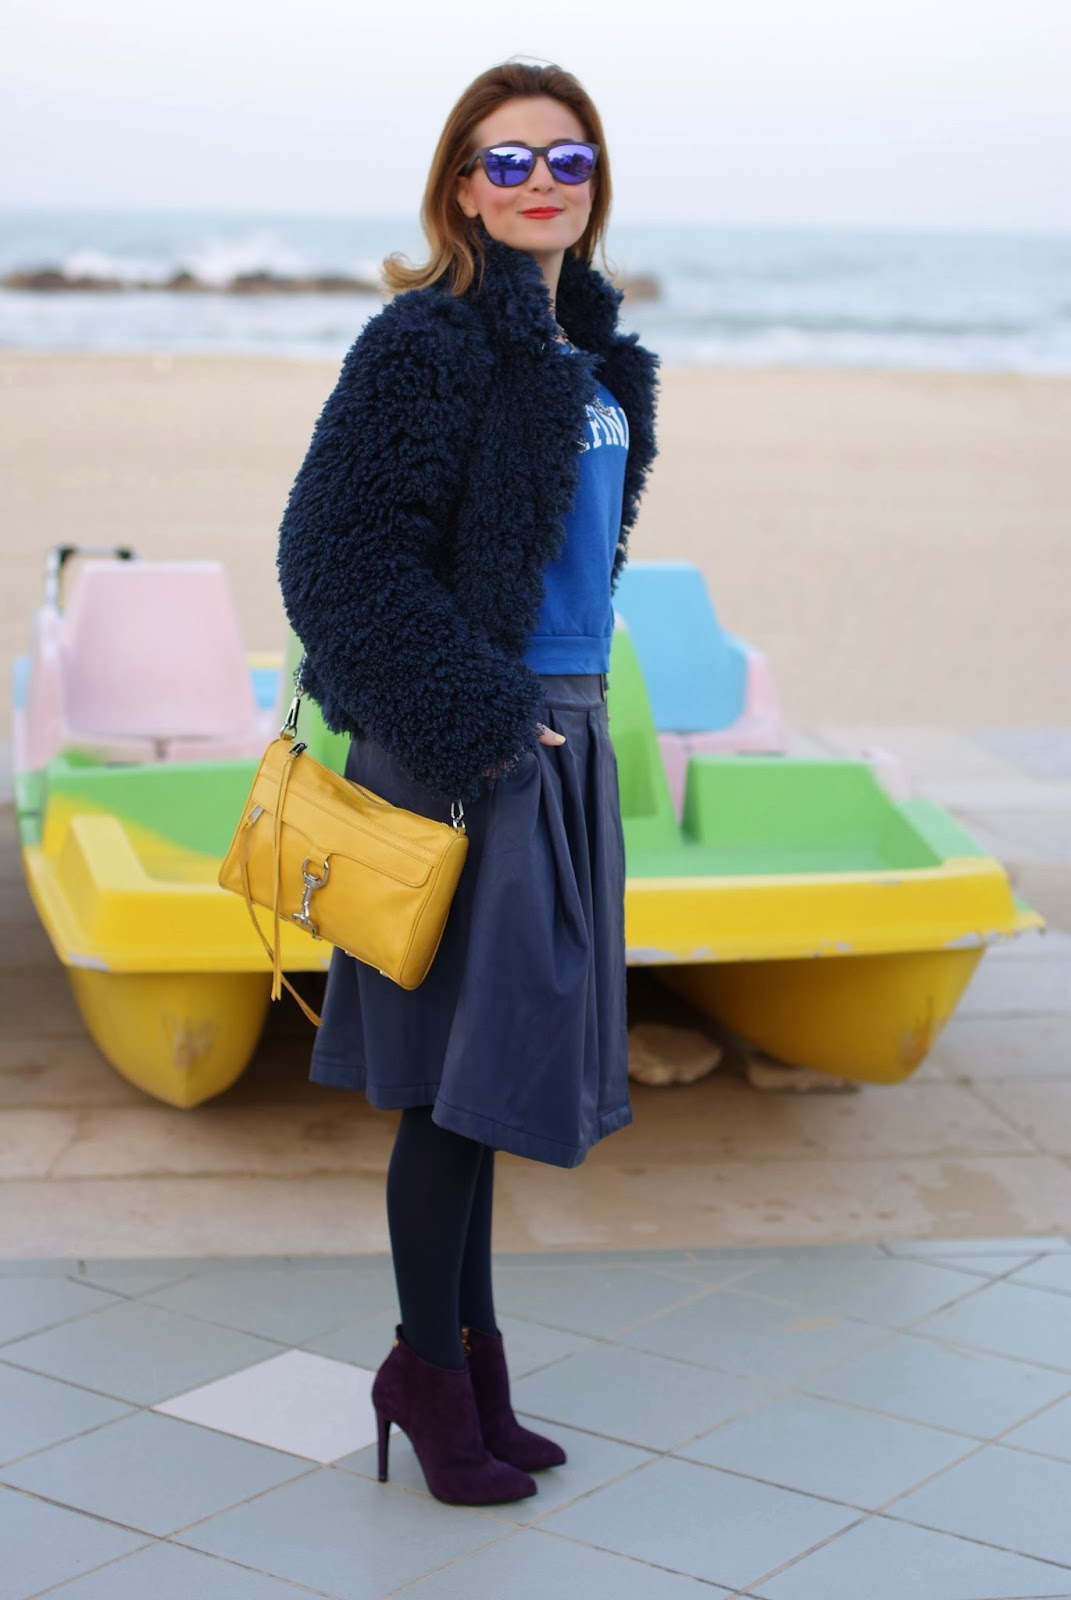 Asos faux leather midi skirt, Fabi shoes, Rebecca Minkoff yellow mac clutch, Fashion and Cookies, fashion blogger